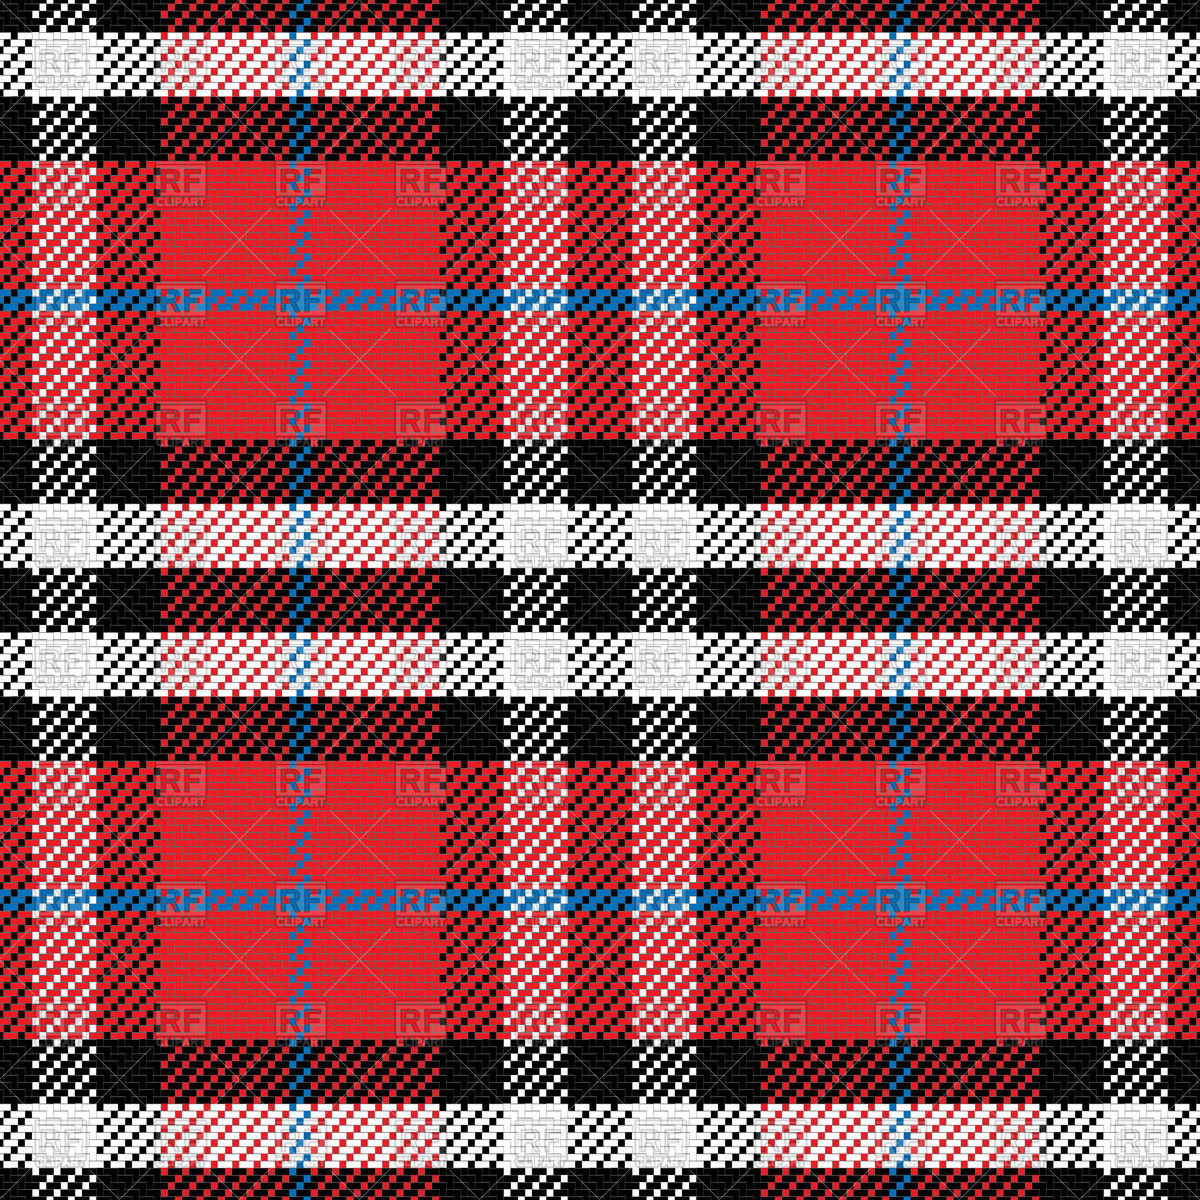 Scottish tartan pattern Vector Image #43720.